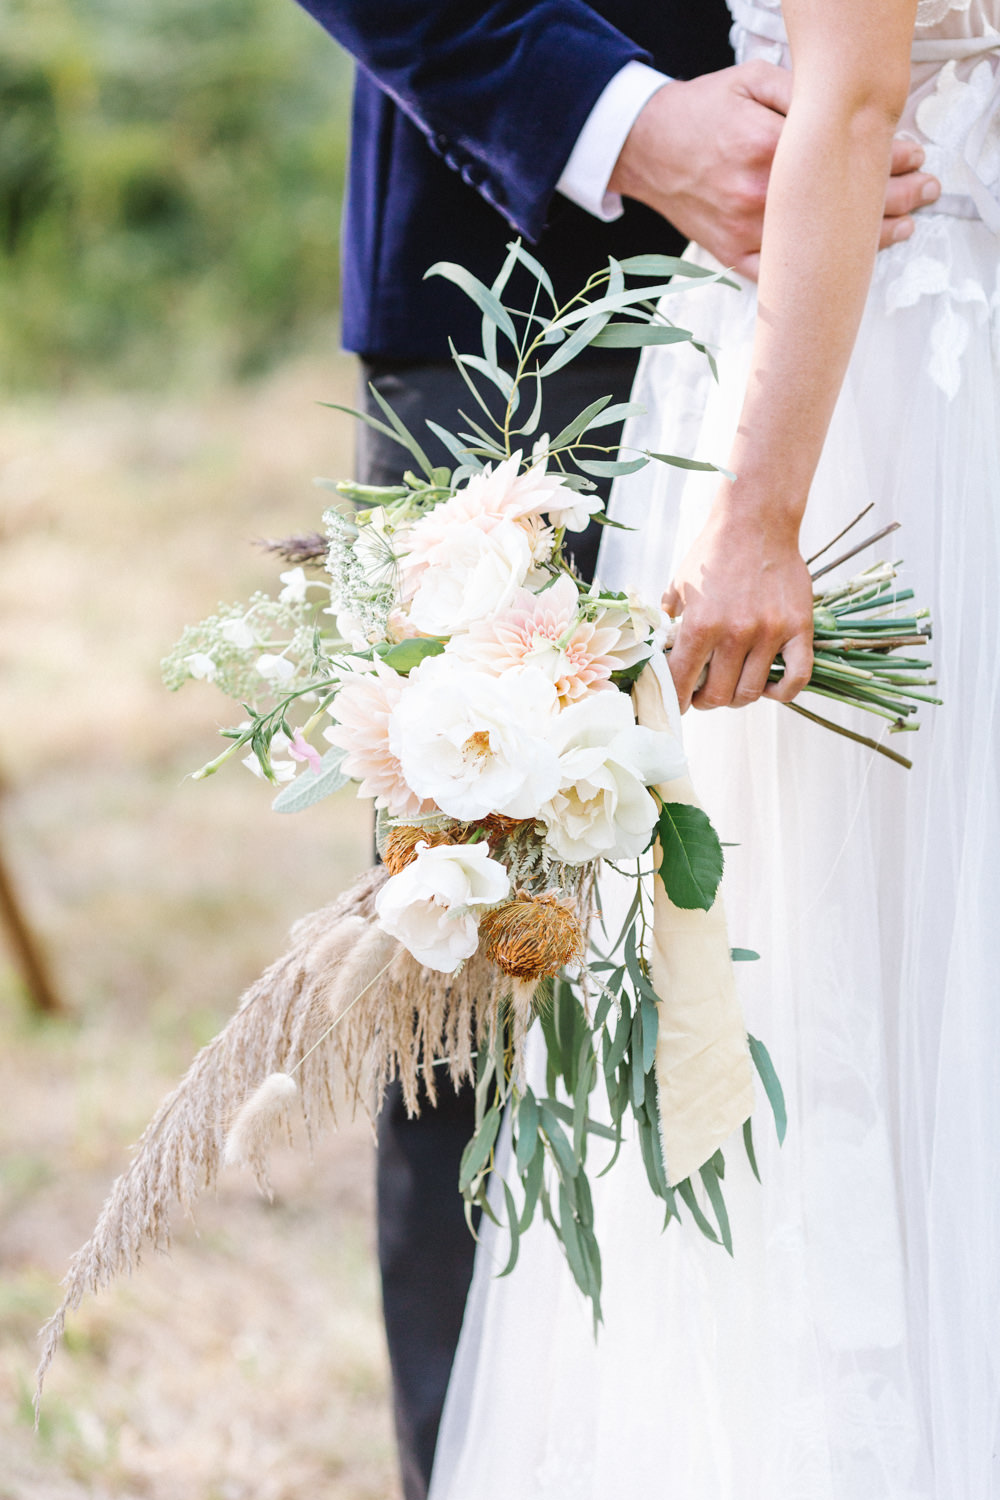 Bouquet Flowers Bride Bridal Rose Dahlias Grass Foliage Ribbon Boconnoc Wedding Debs Alexander Photography